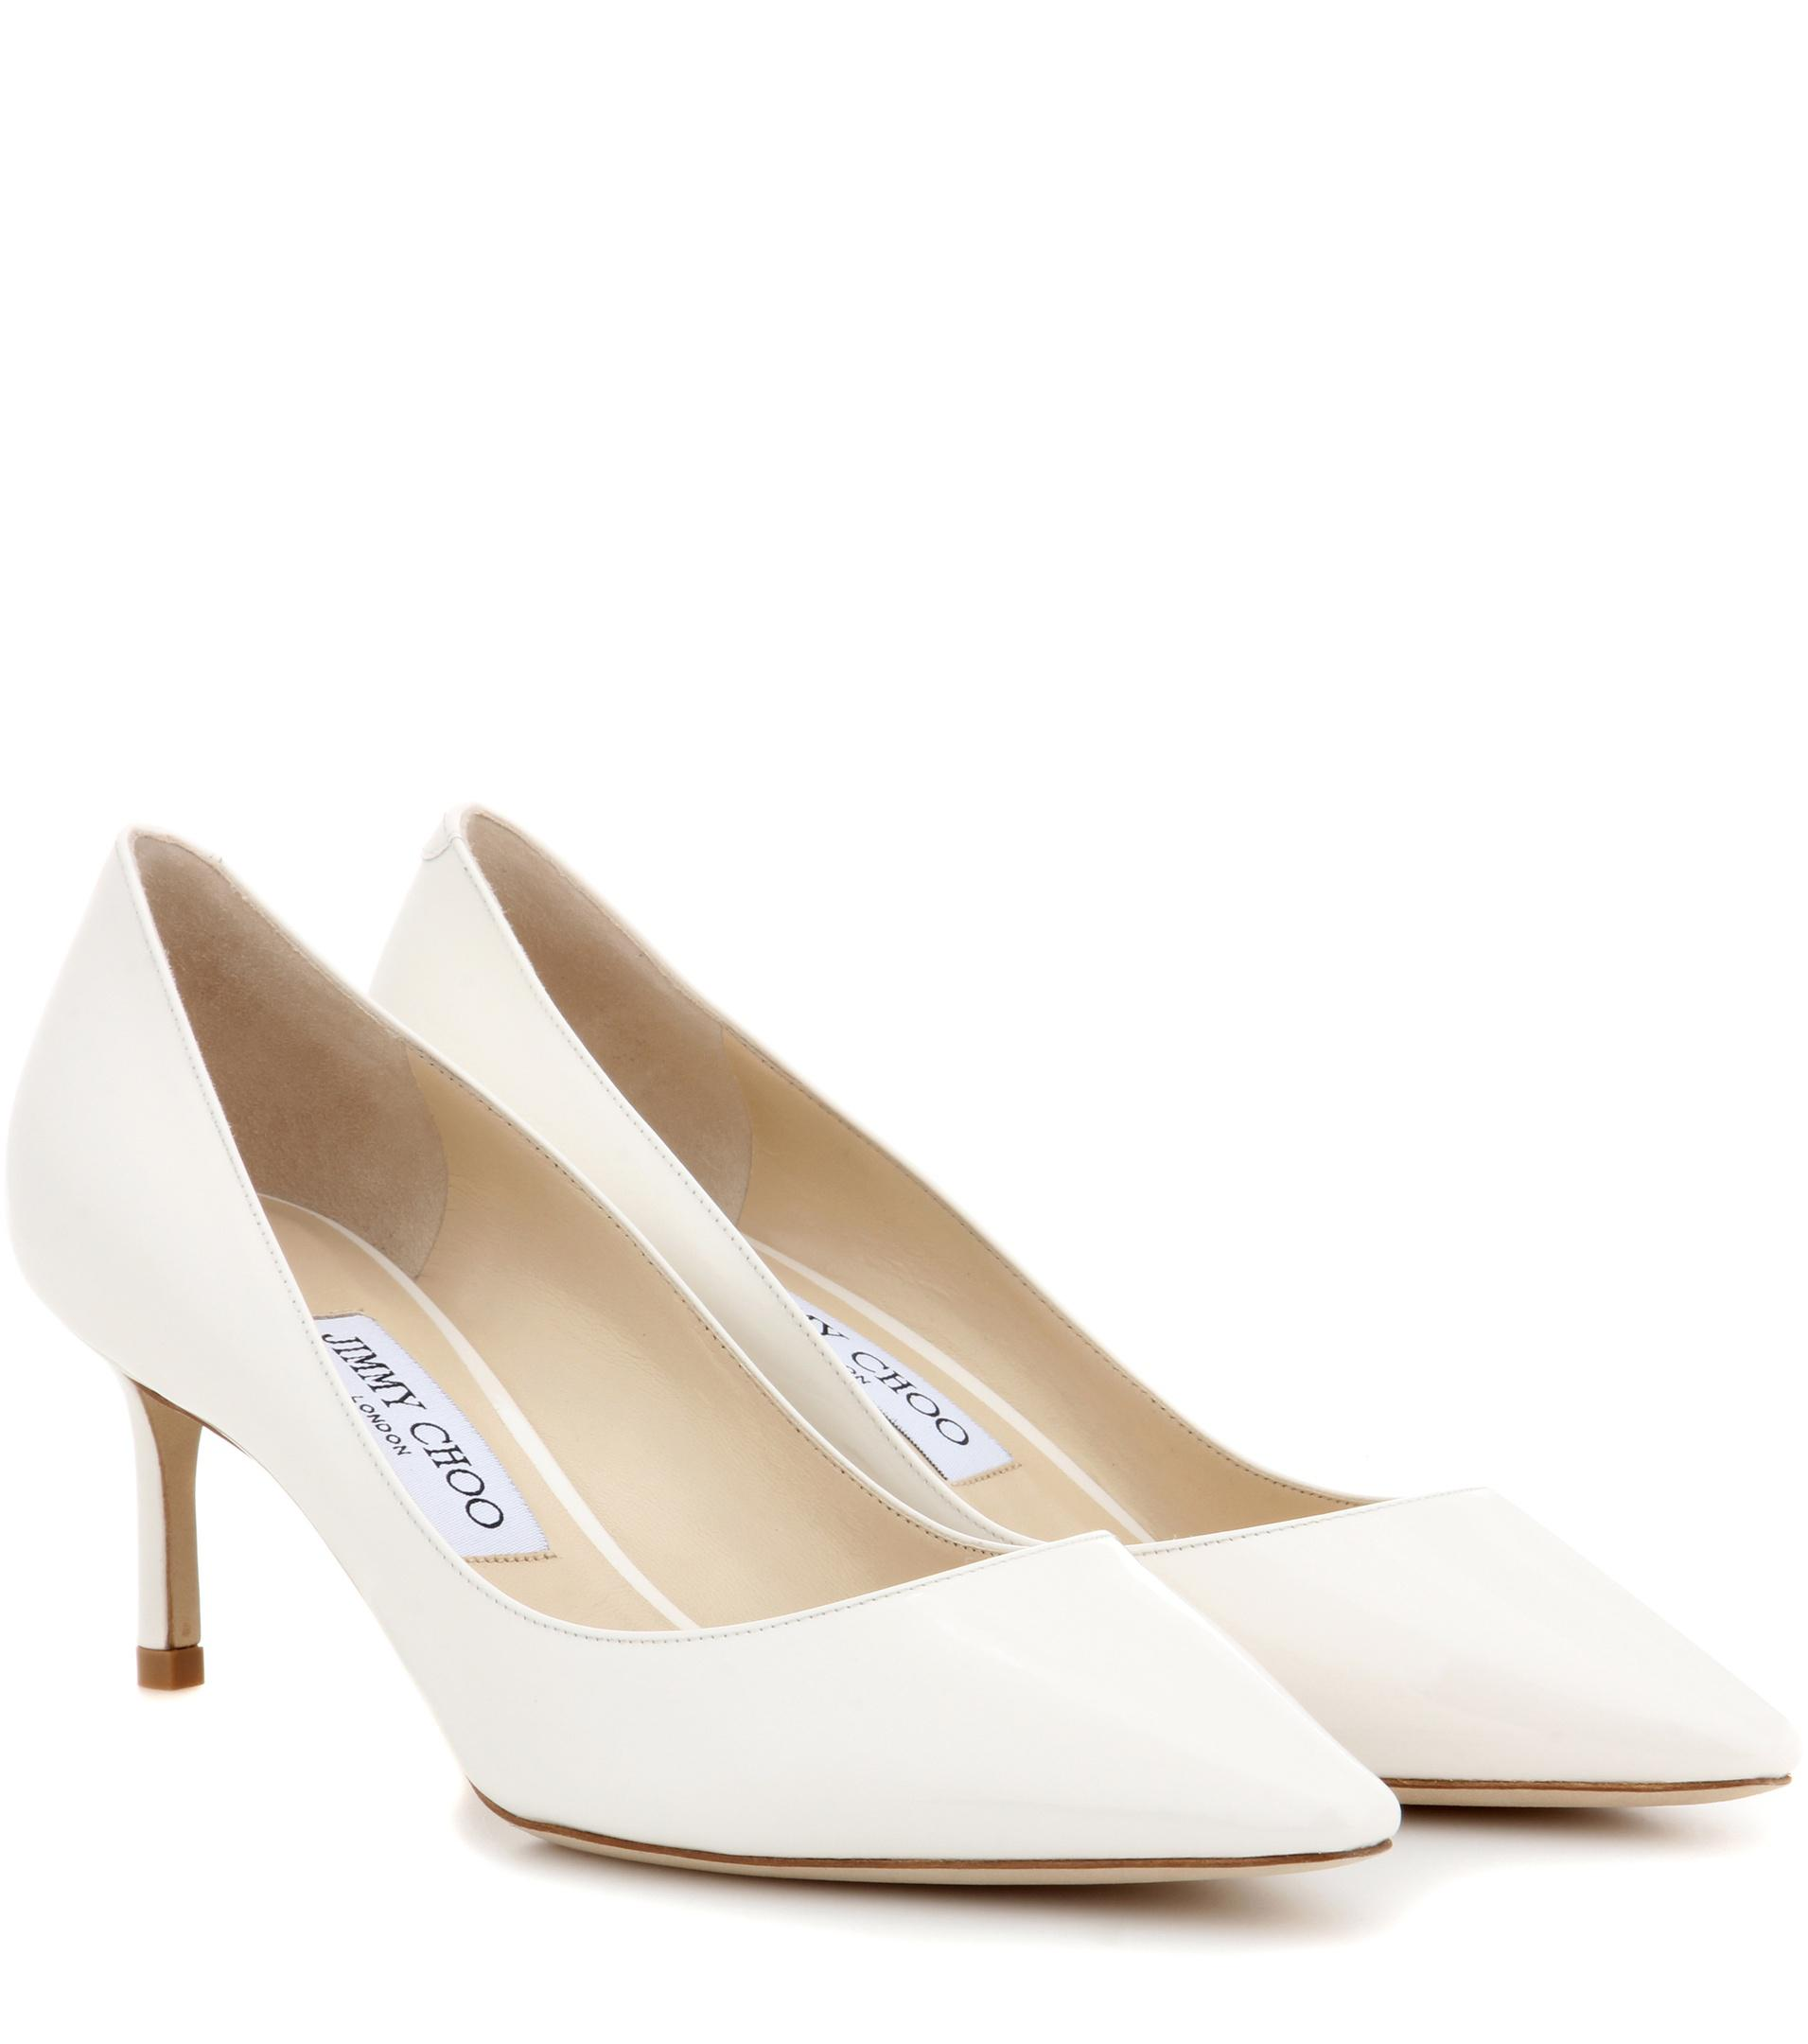 Romy 100 Glittered Leather Pumps - Off-white Jimmy Choo London